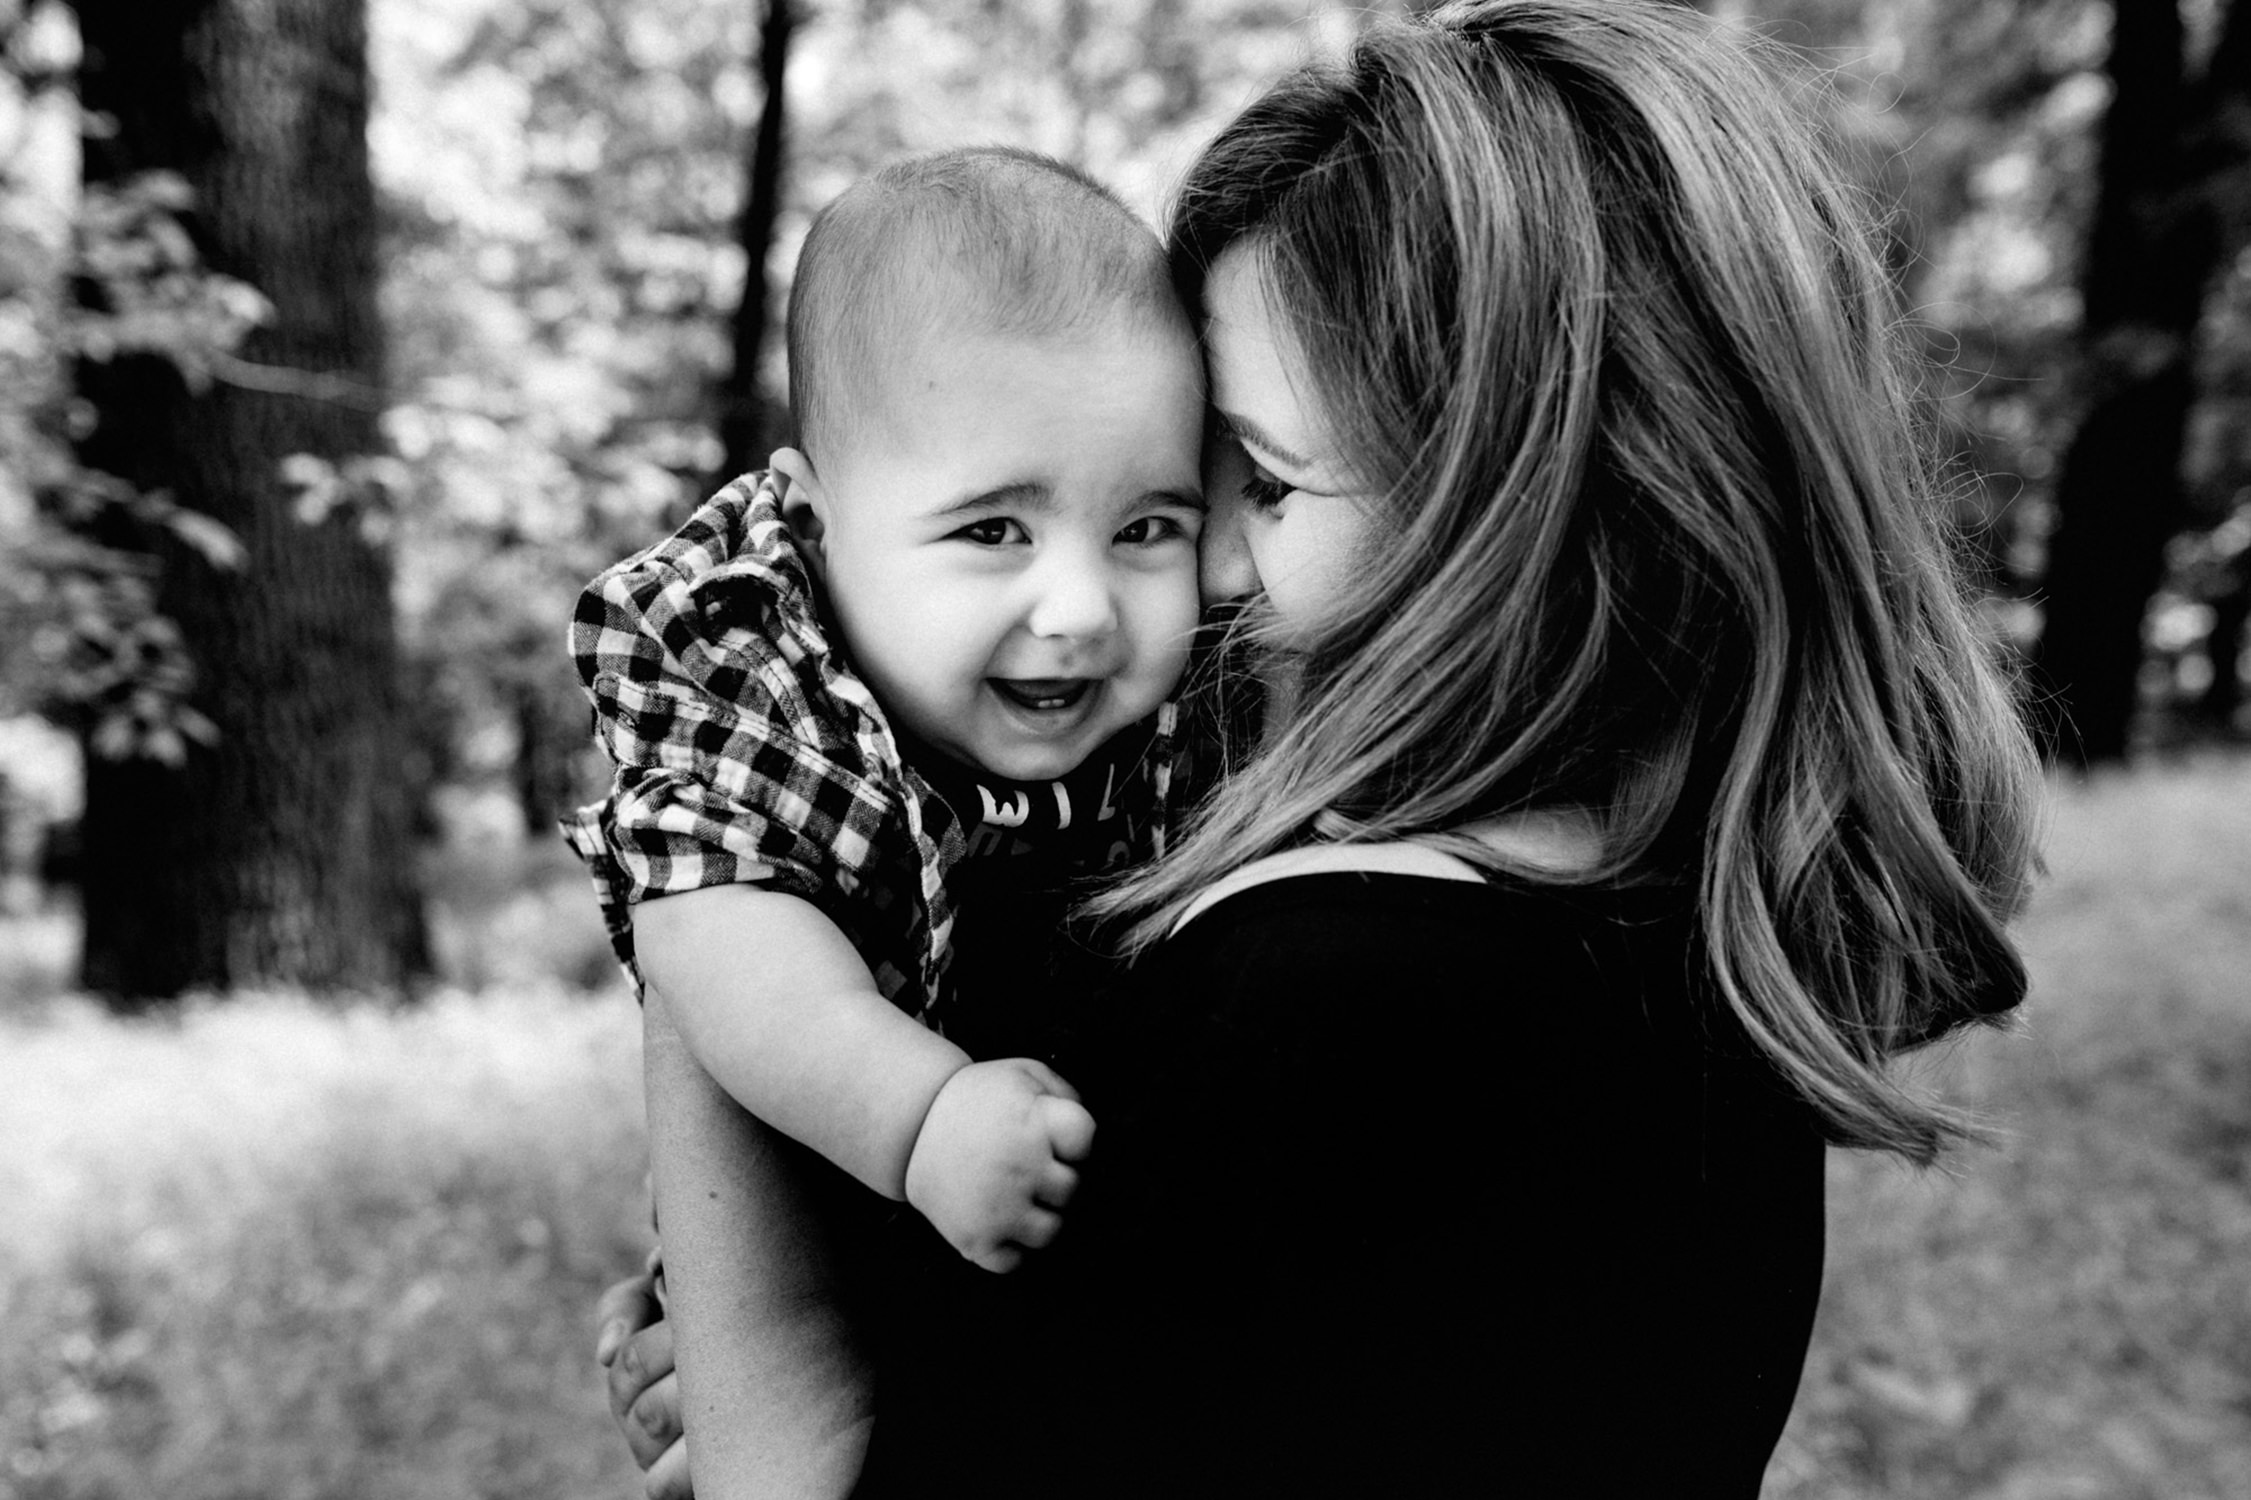 mom and baby boy sharing a cure moment together. the baby boy is smiling and looking at the camera while mom is holding him tight to her face